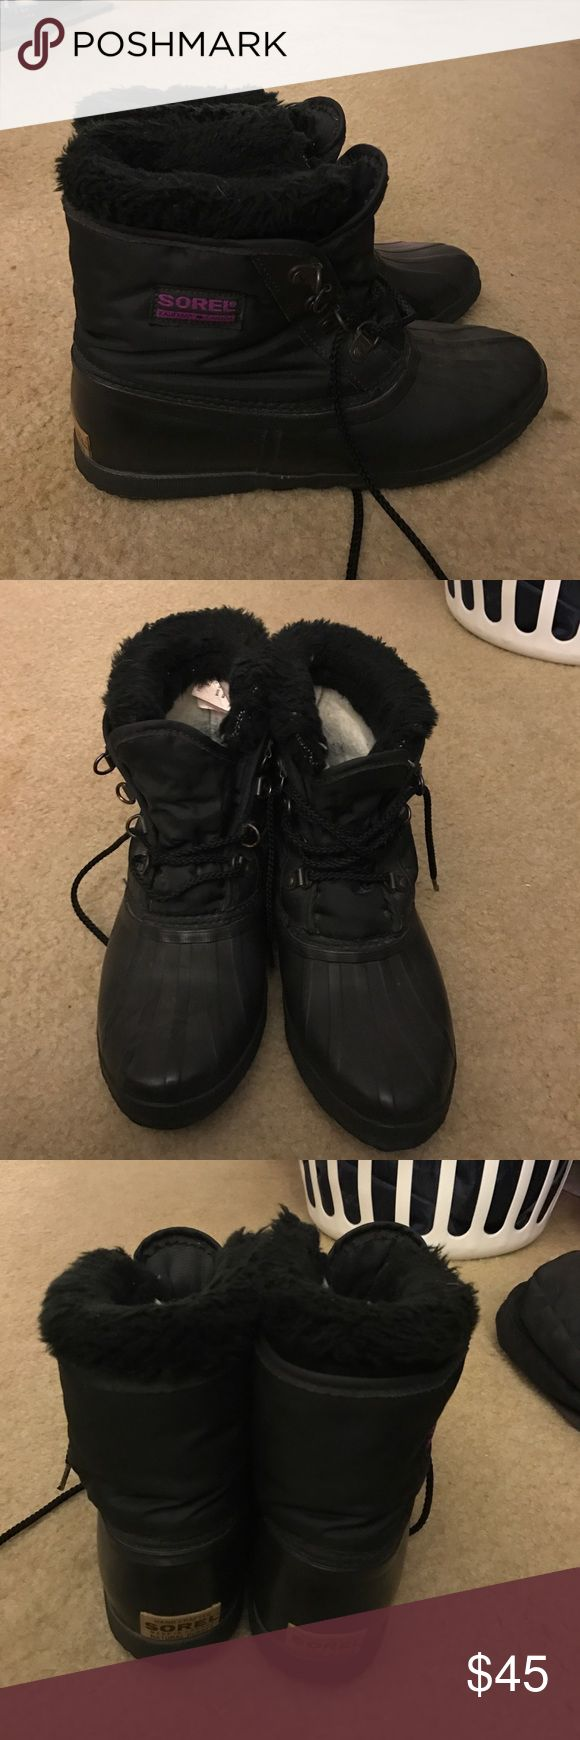 Sorel boots Hello , I have a beautiful pair of sorel boots for sale! They have been worn many times. They keep me very warm in the winter. Size 8 Please make offers ! Thanks Sorel Shoes Winter & Rain Boots